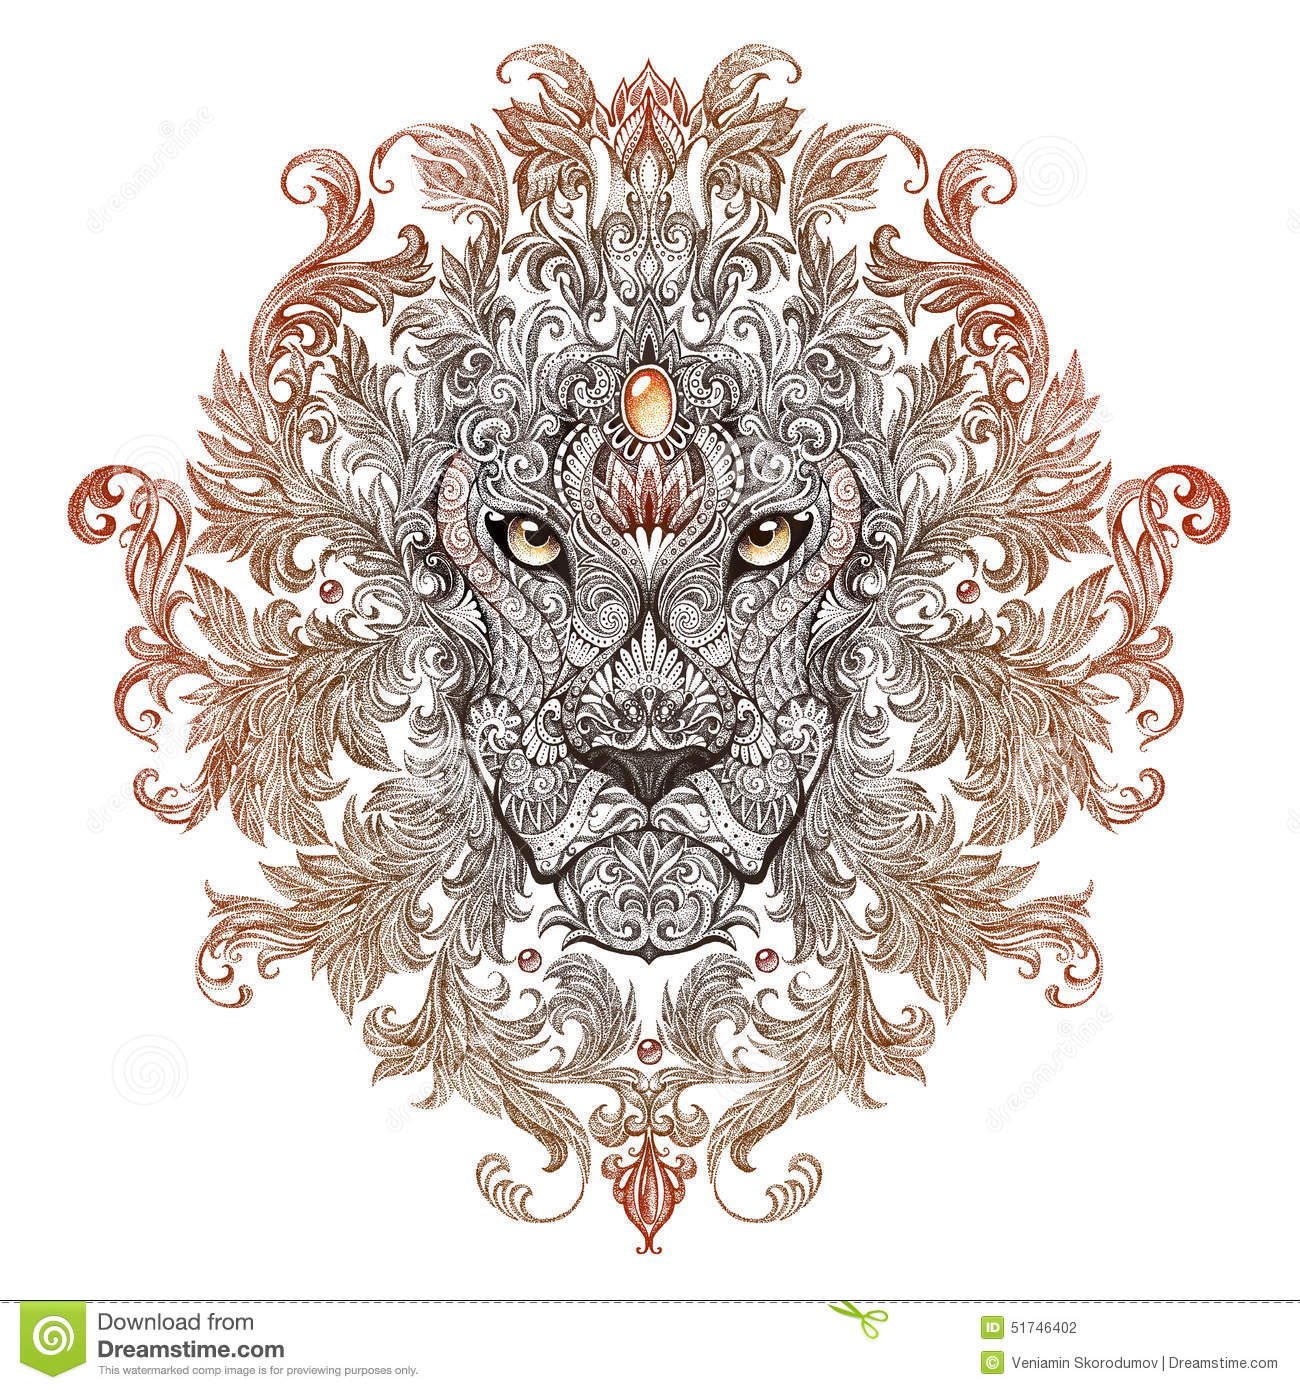 tatouage t te de graphiques d 39 un lion avec une crini re illustration stock image 51746402. Black Bedroom Furniture Sets. Home Design Ideas